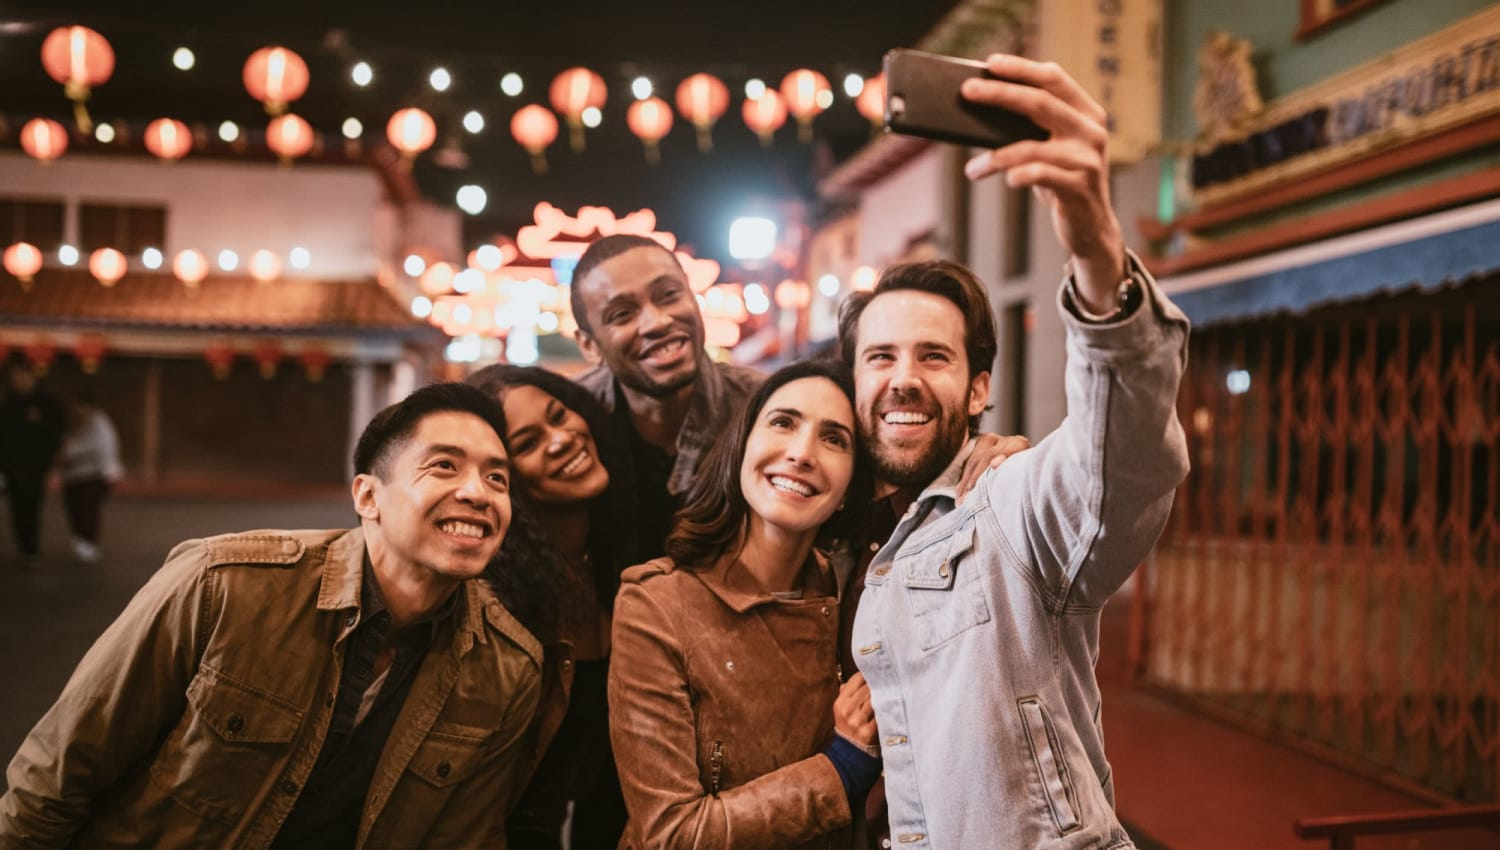 Group selfie at their favorite restaurant near The Residences at Sawmill Station in Morton Grove, Illinois